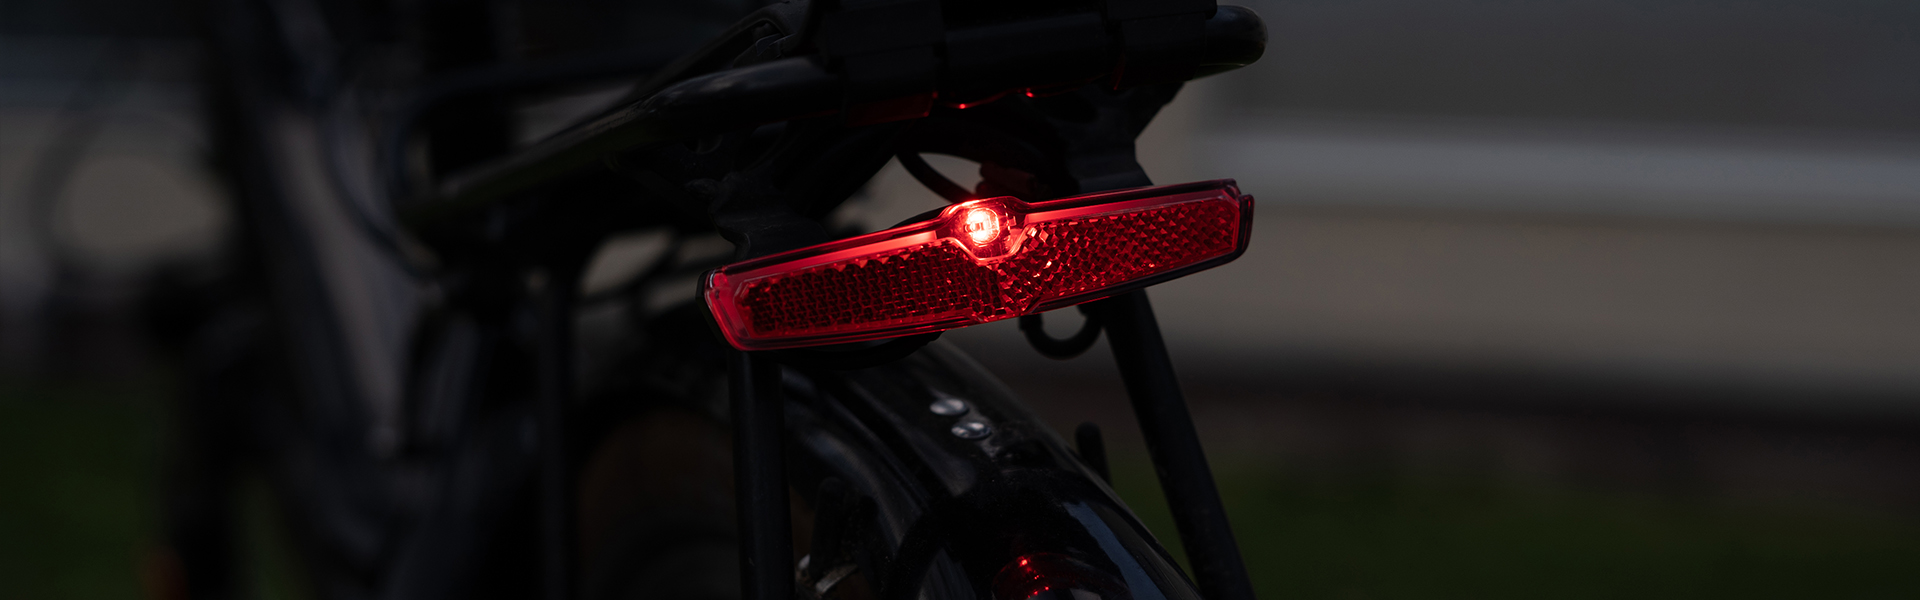 Sate-lite CREE 15lux ebike light ISO 6721-1 StVZO  eletric bike headlight with StVZO ISO 6742-2 ECE reflector front fork 6-48V